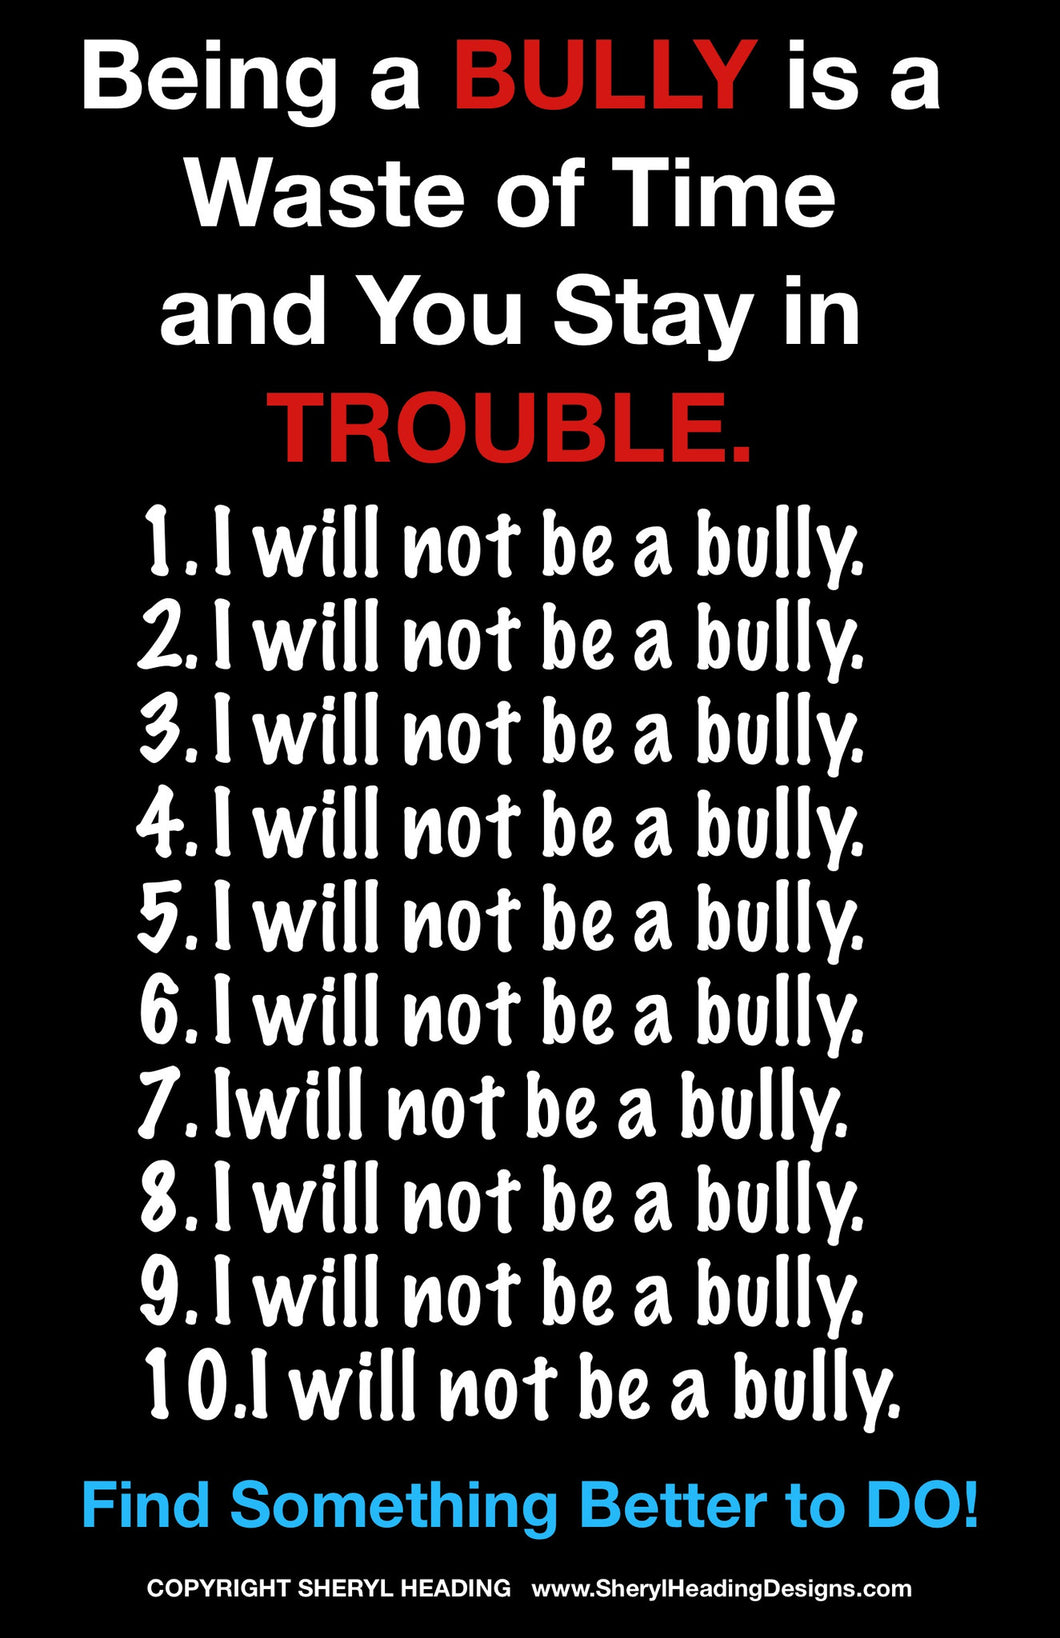 Being a Bully is a Waste of Time... Poster - Sheryl Heading Designs